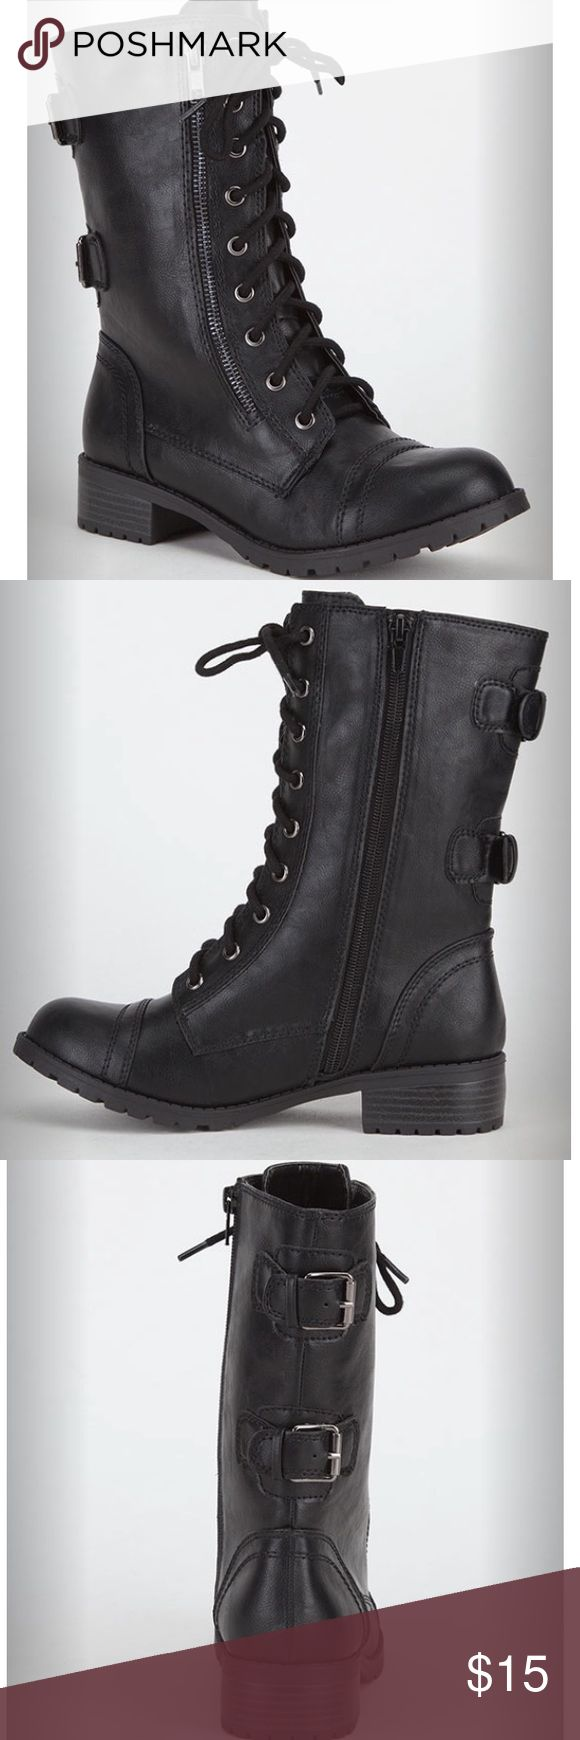 Women's Black Combat Boots Faux leather upper with crinkled effect. Full lace up front. Working side zip with decorative zip on the other side. Buckle details at back.  Originally $49.99 These have been USED, which is why the price is so discounted. Tilly's Shoes Combat & Moto Boots